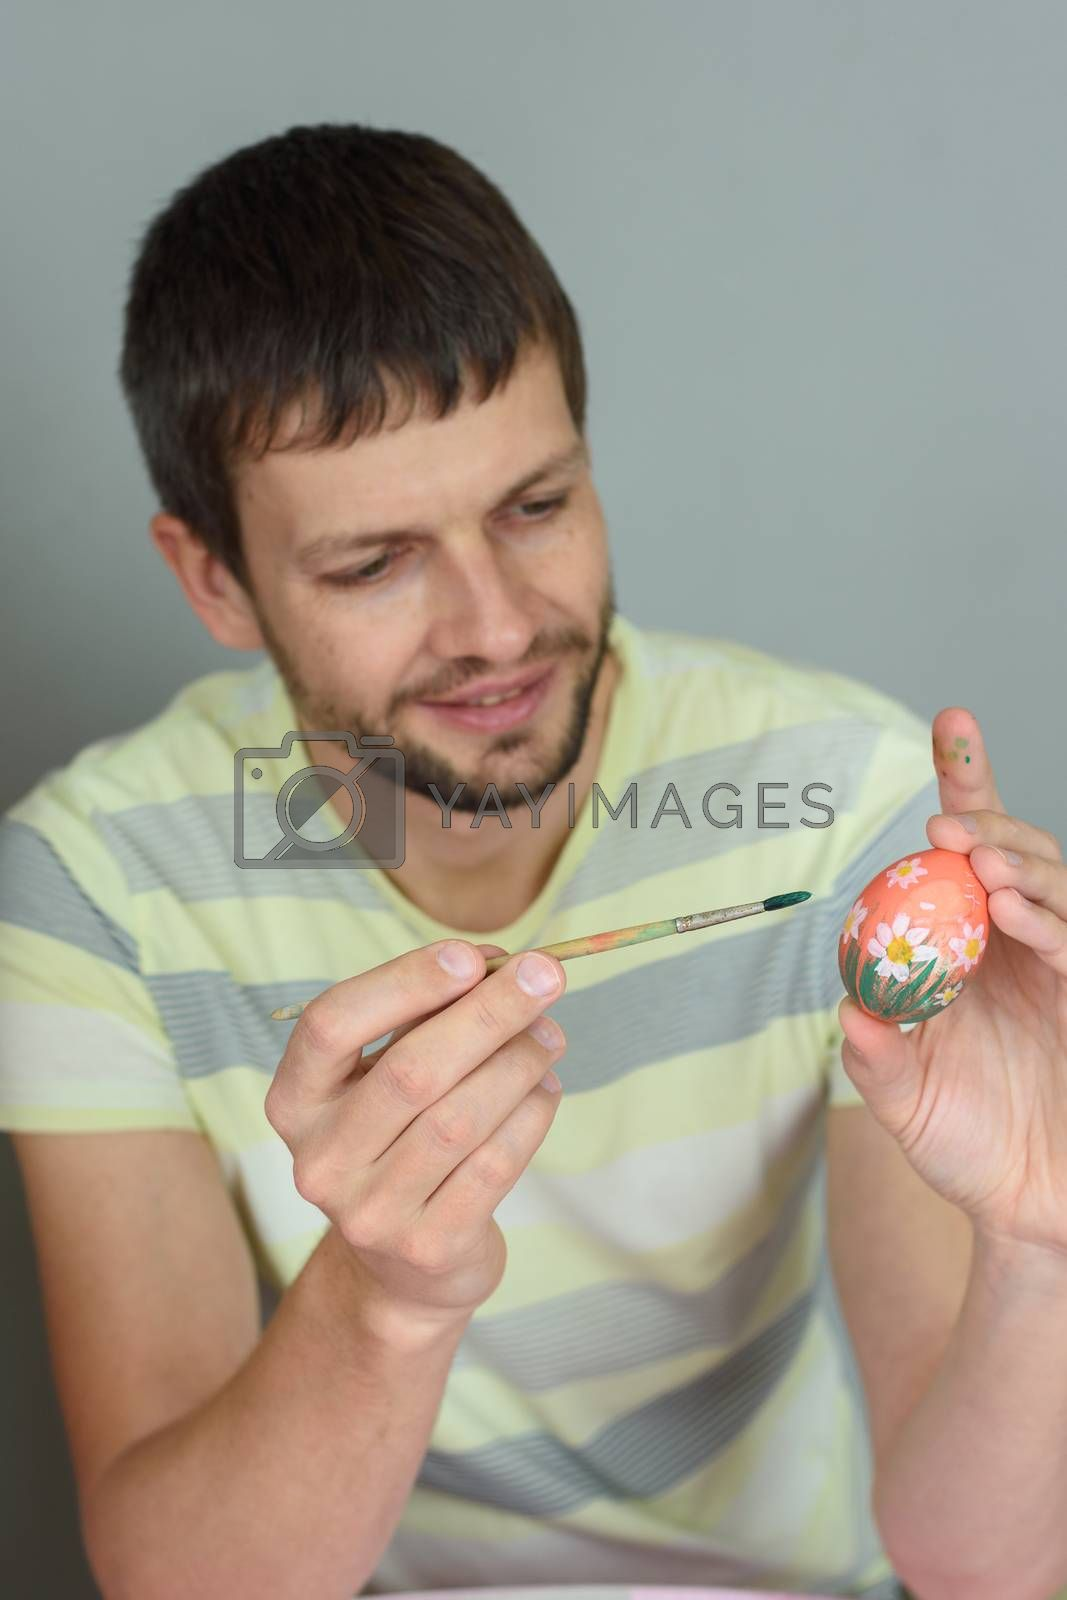 Man paints an Easter egg with a brush